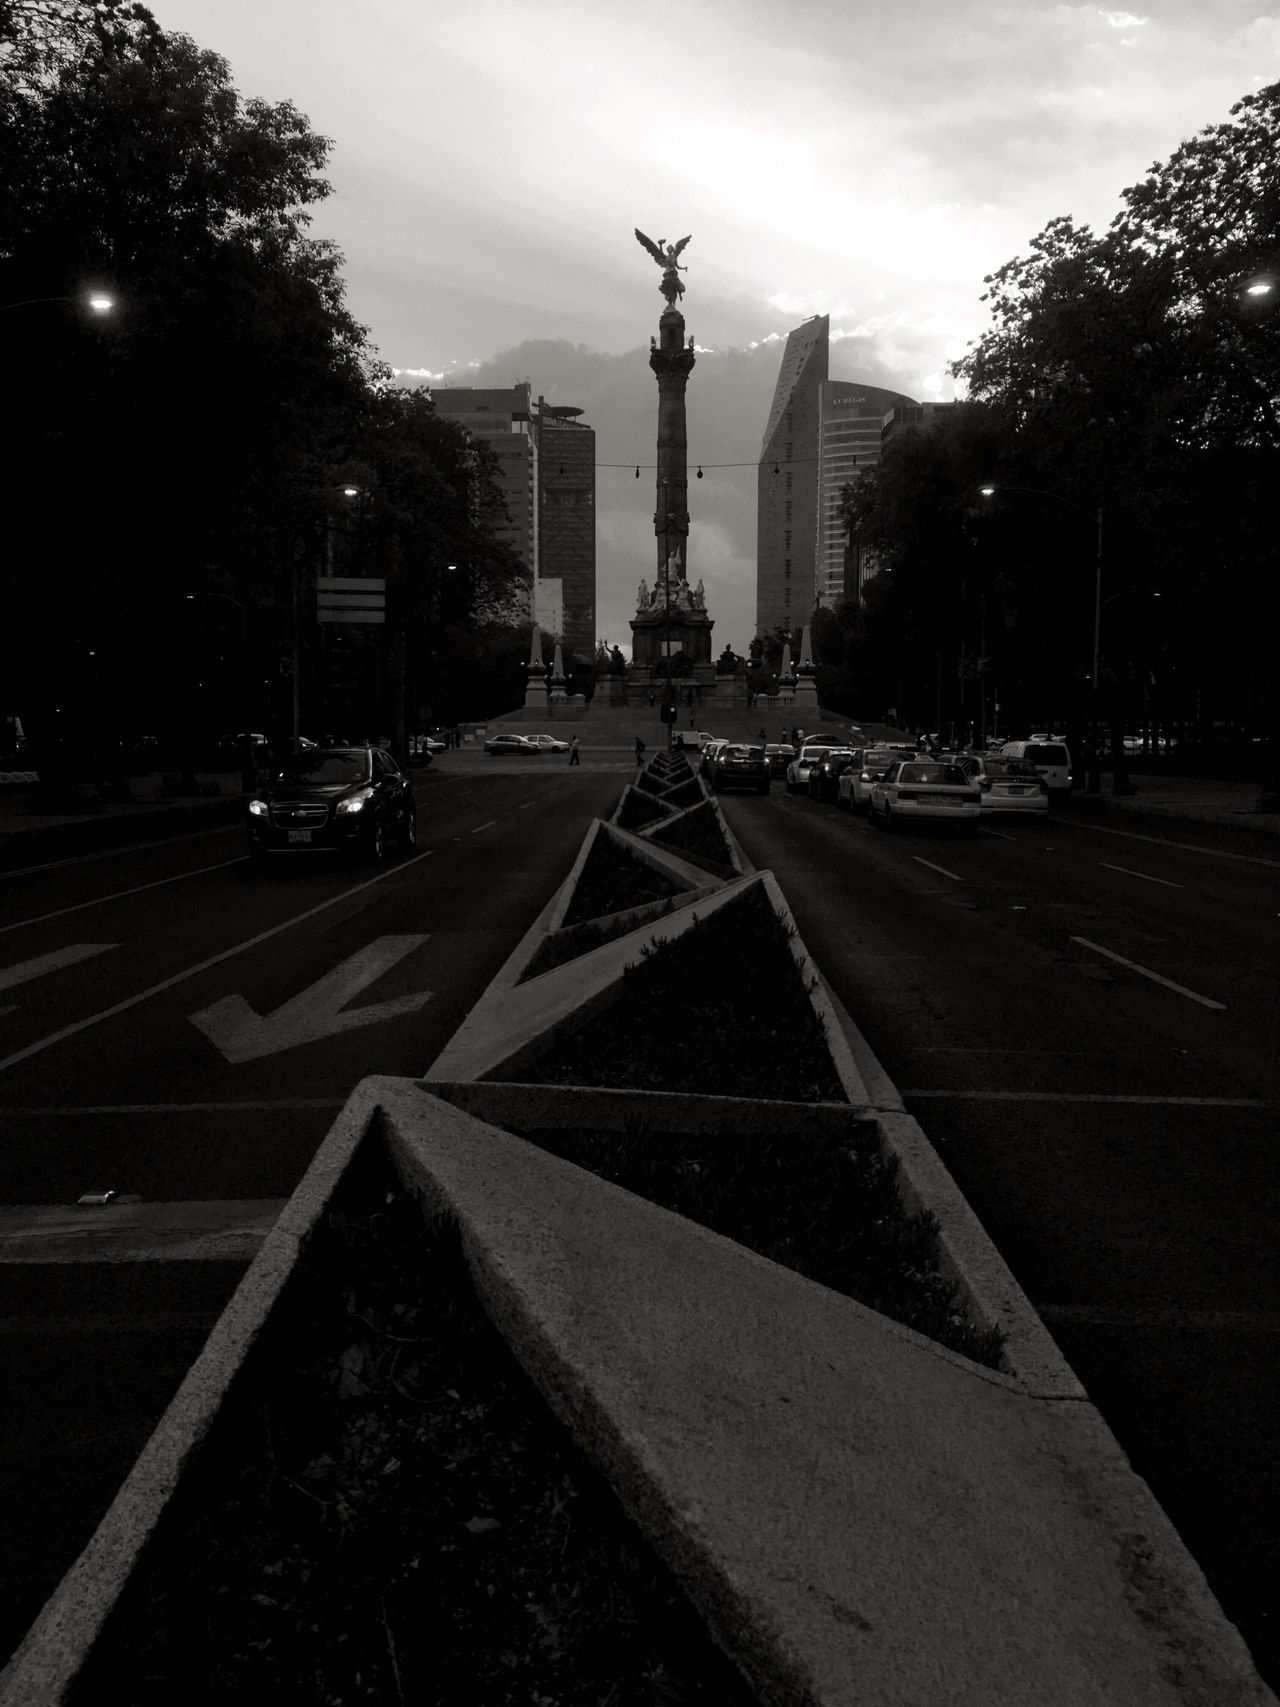 Serie monumentos El angel, Ciudad de México Travel Destinations Architecture City Statue EyeEm Best Shots - Black + White EyeEm Best Shots